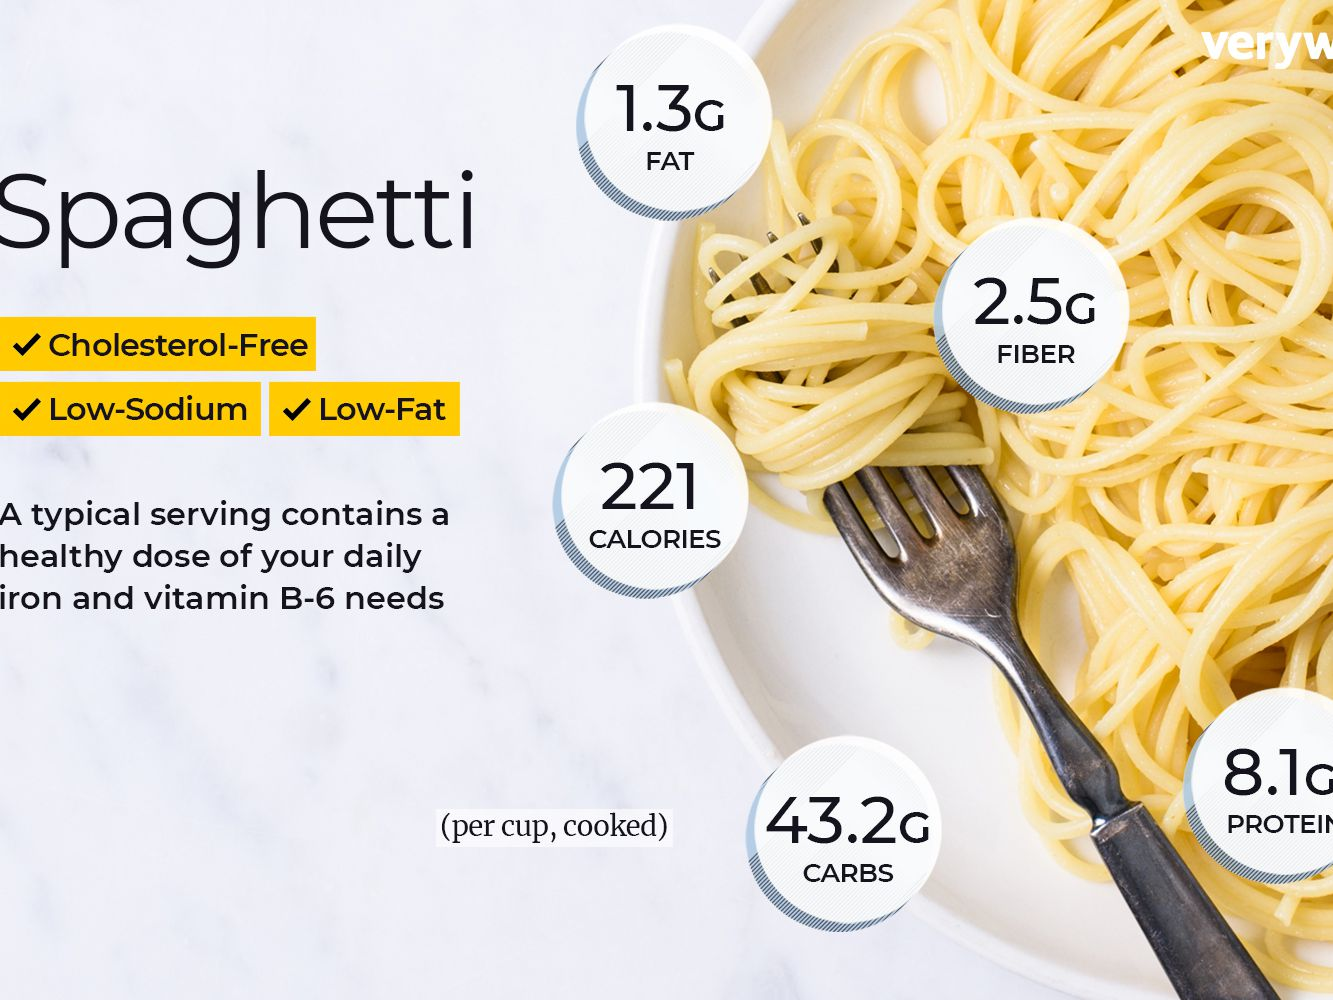 Spaghetti Nutrition Facts Calories and Health Benefits